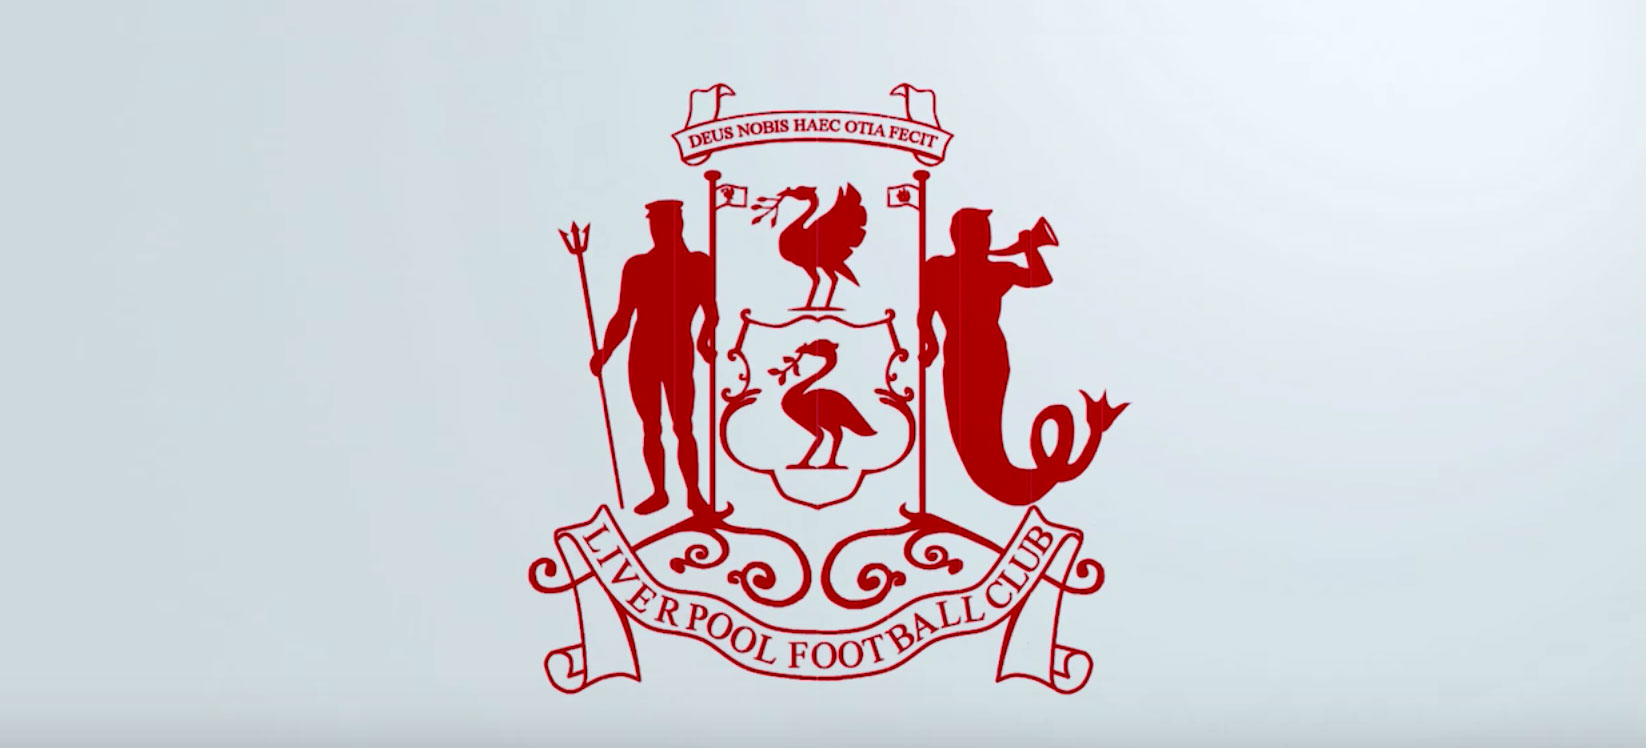 Original LFC Badge 1892+